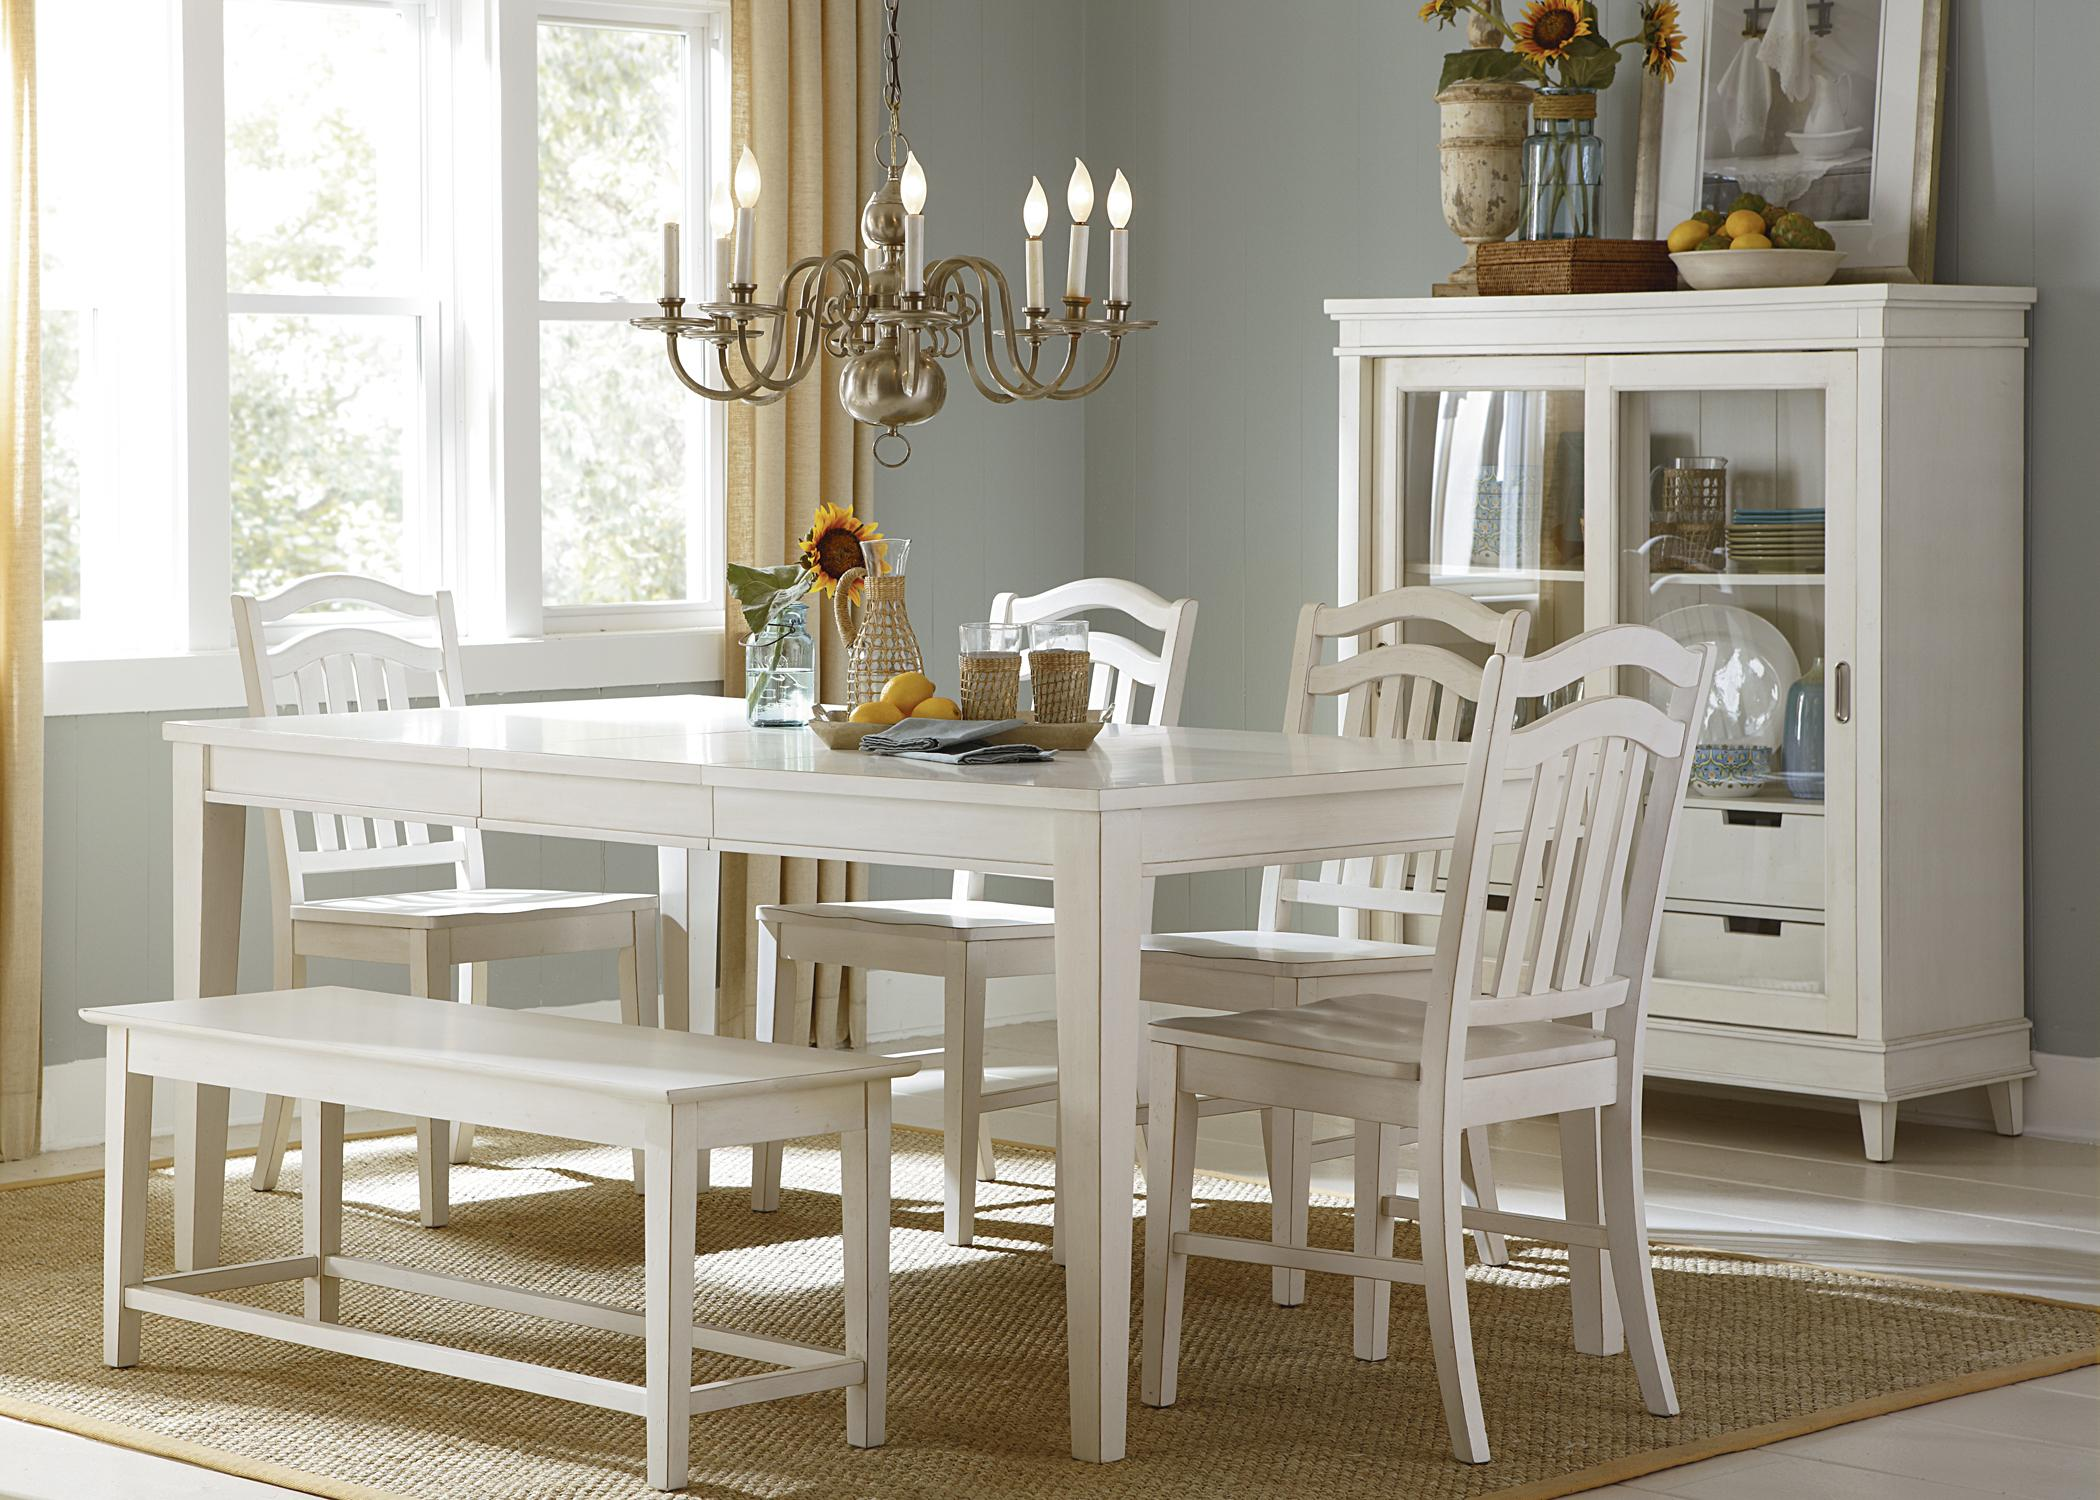 Liberty Furniture Summerhill 6-Piece Dining Set  - Item Number: 518-CD-SET191